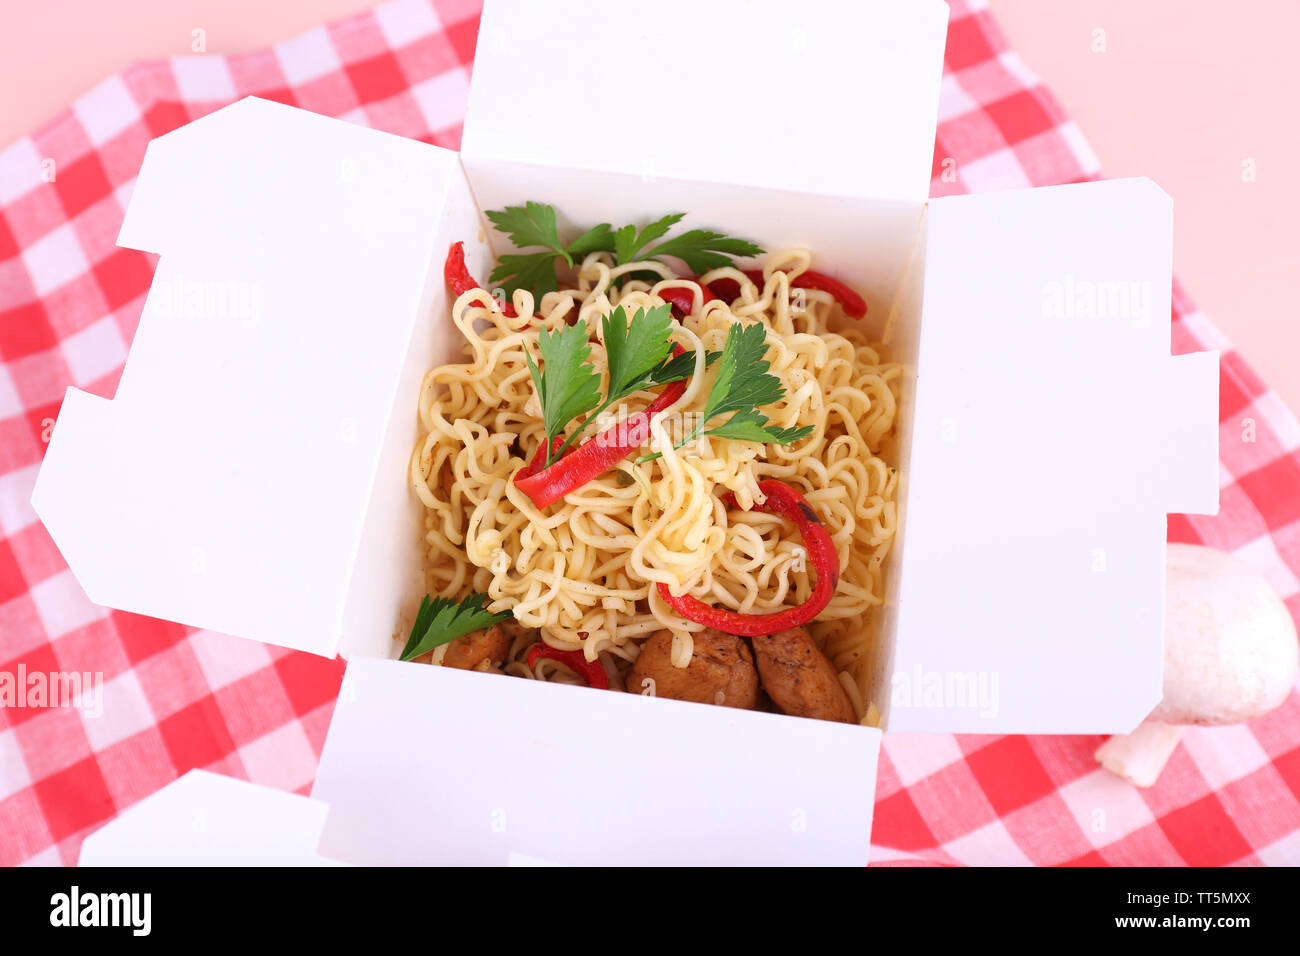 Chinese noodles in takeaway boxes on fabric background - Stock Image